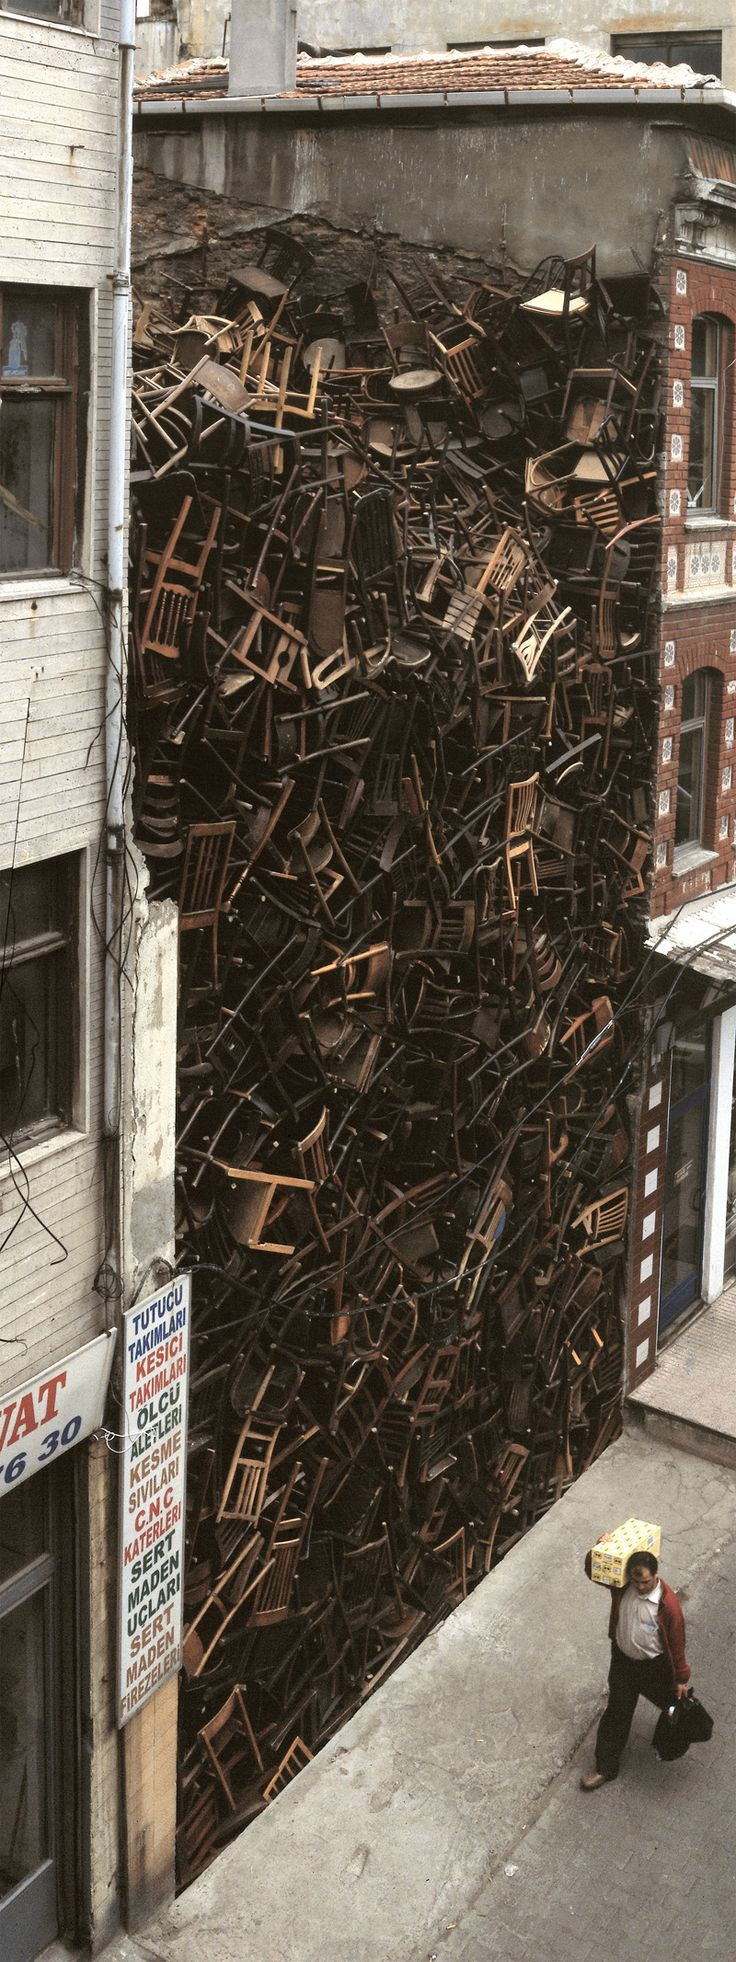 Doris Salcedo. 1,550 wooden chairs central Istanbul! Awesome!